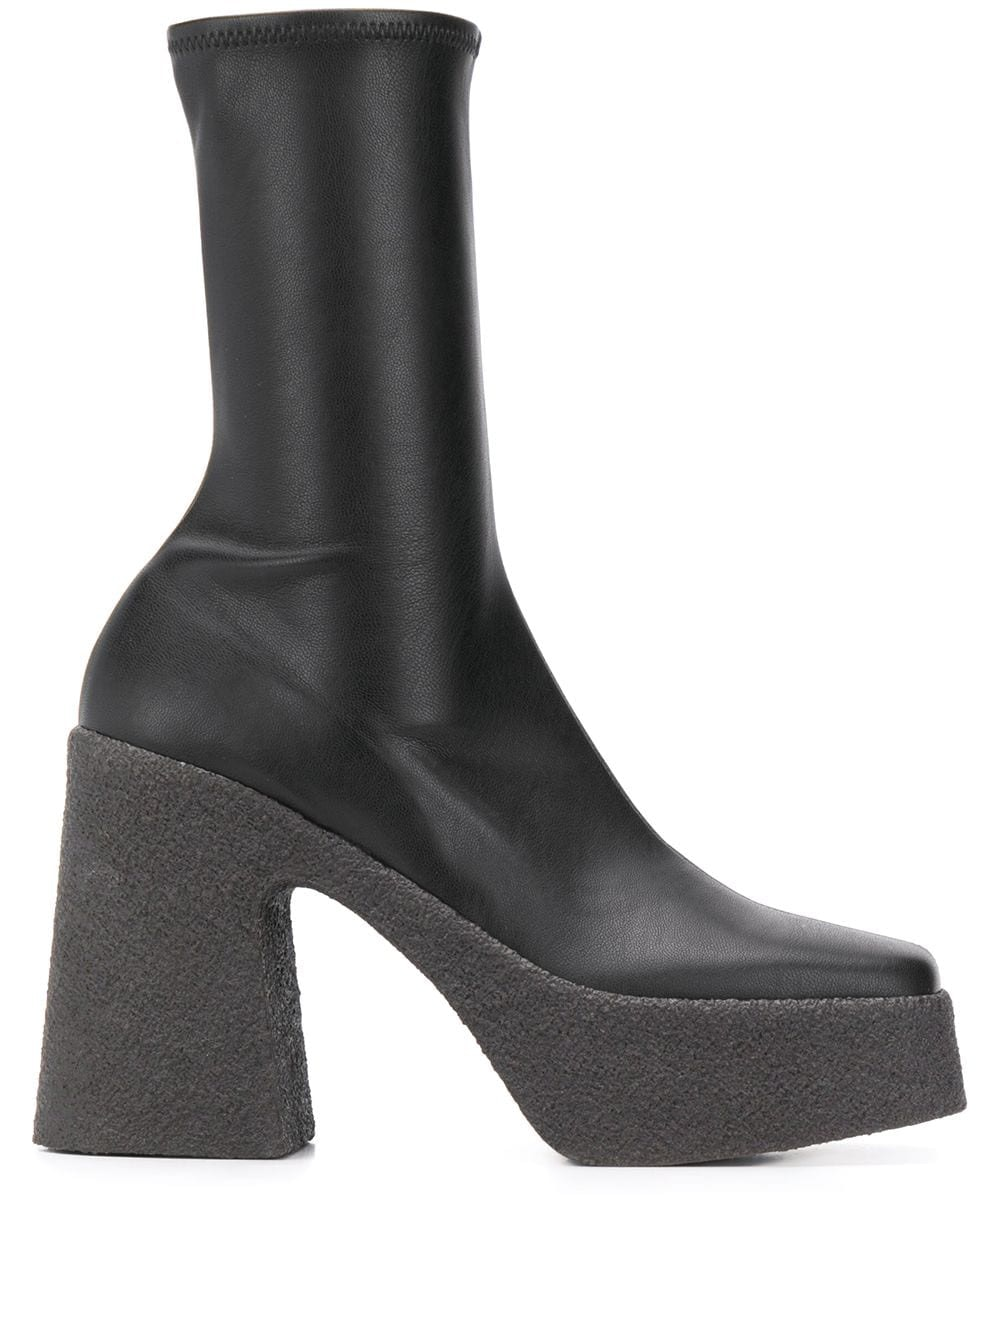 The Platform Boot Trend Is Predicted To